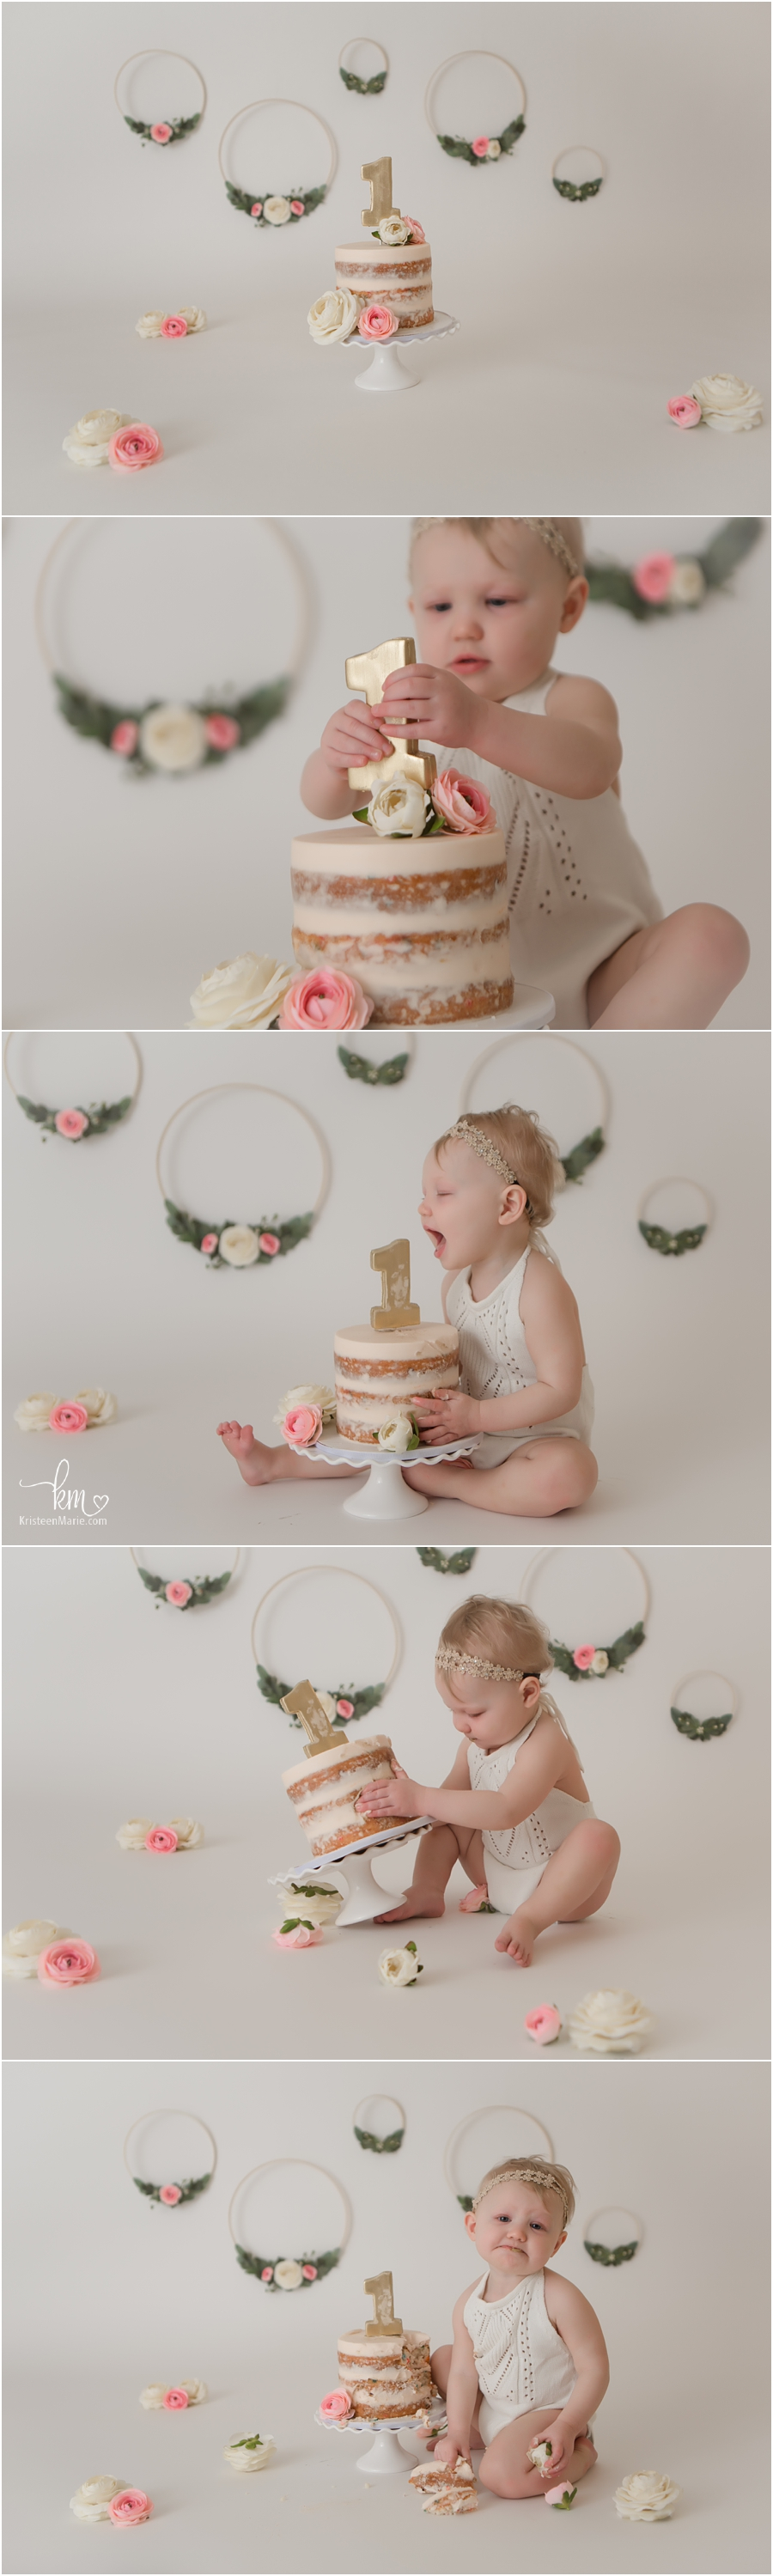 Boho themed first birthday cake smash session with floral hoops in pink and green